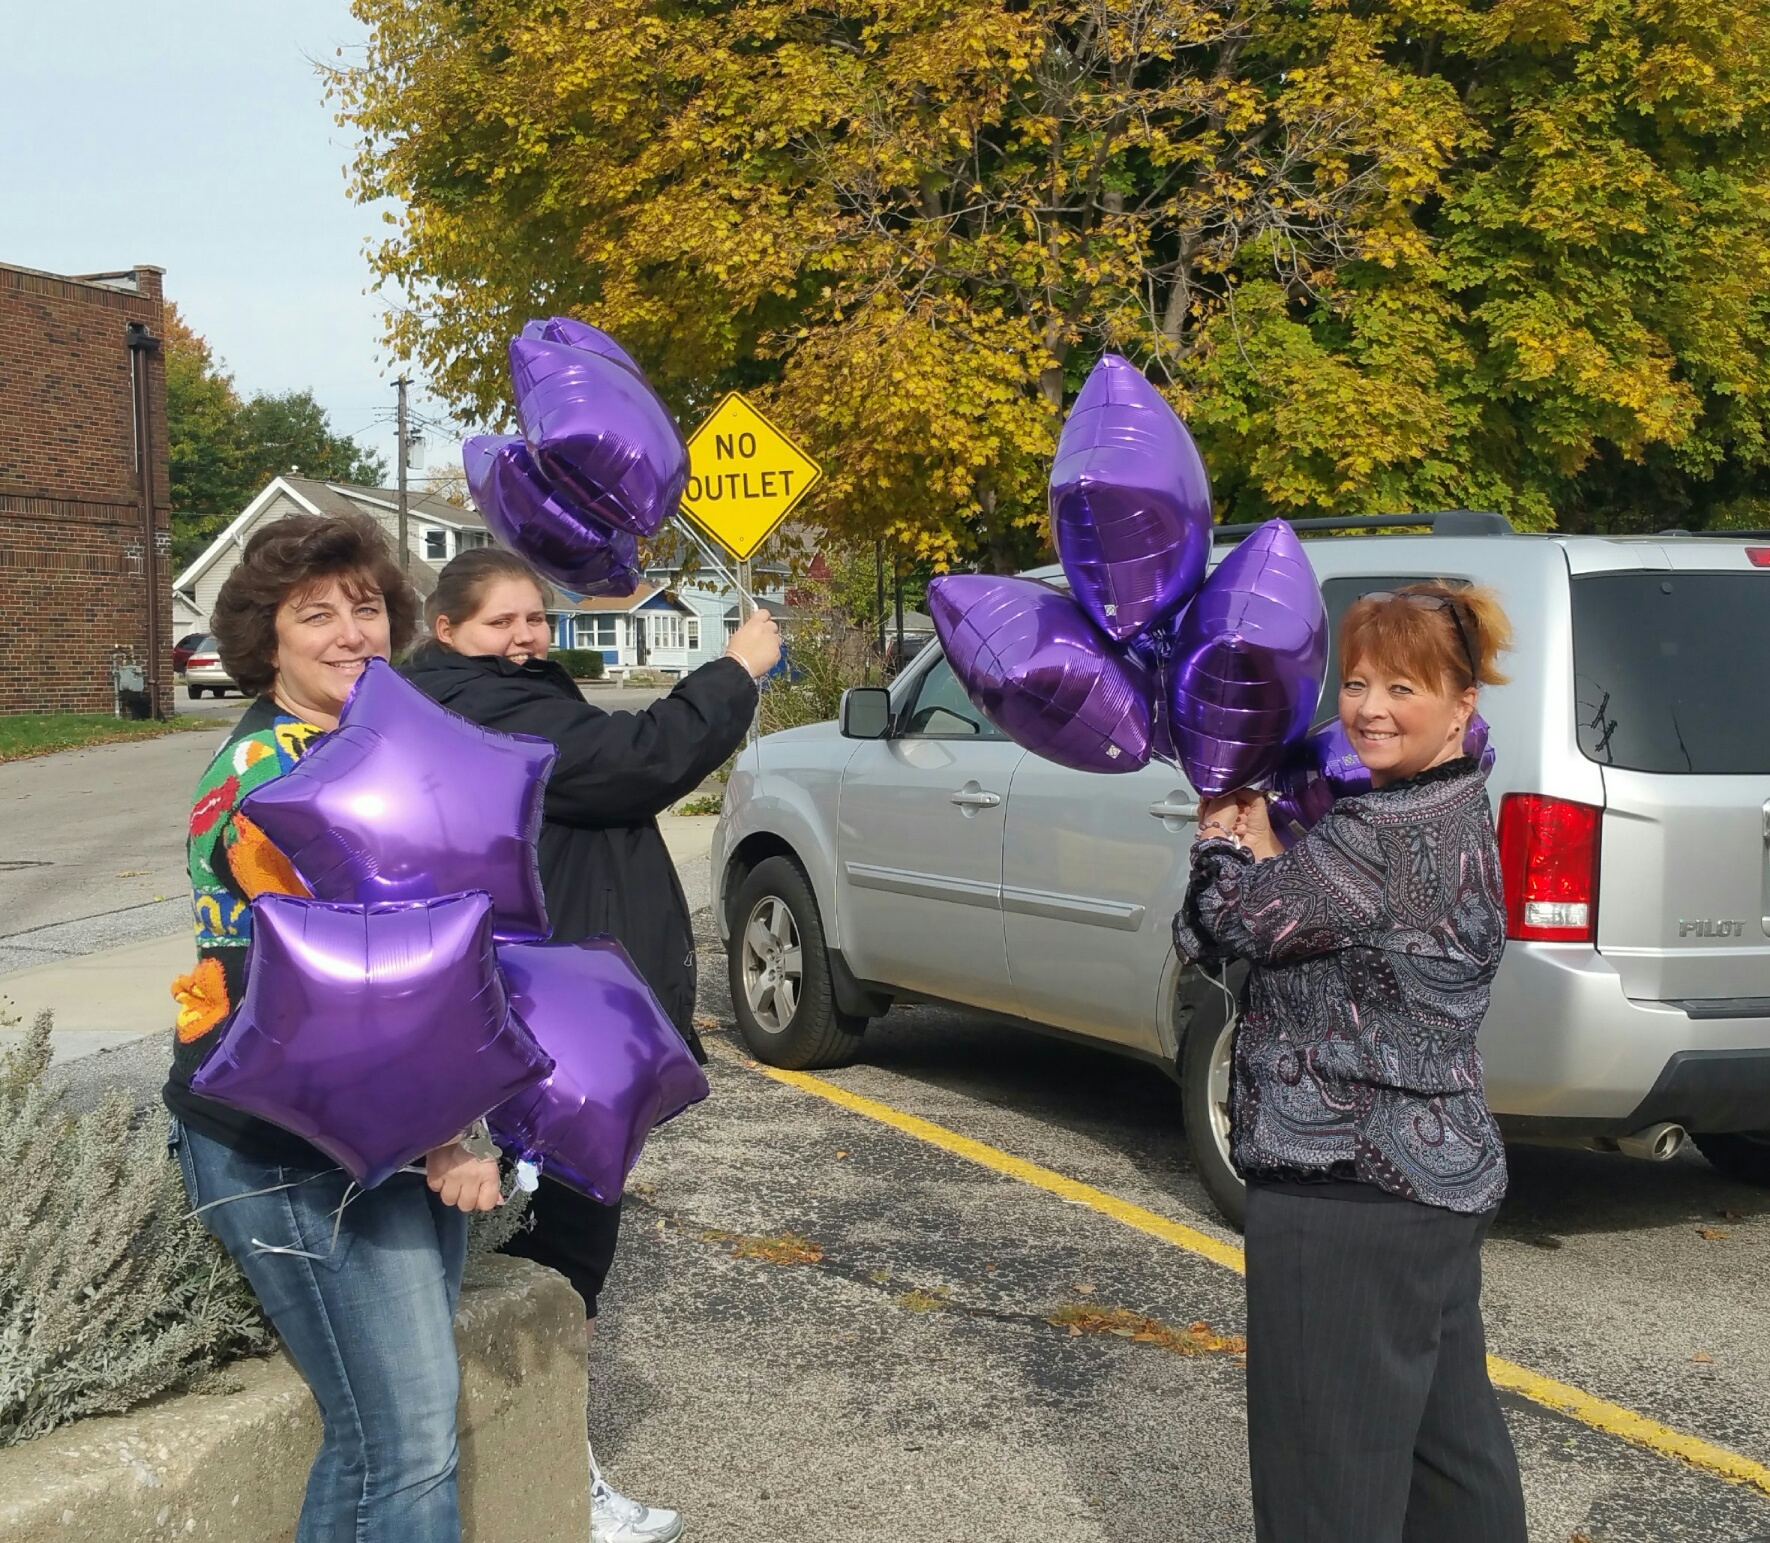 Adult Parole Authority Releases Purple Balloons